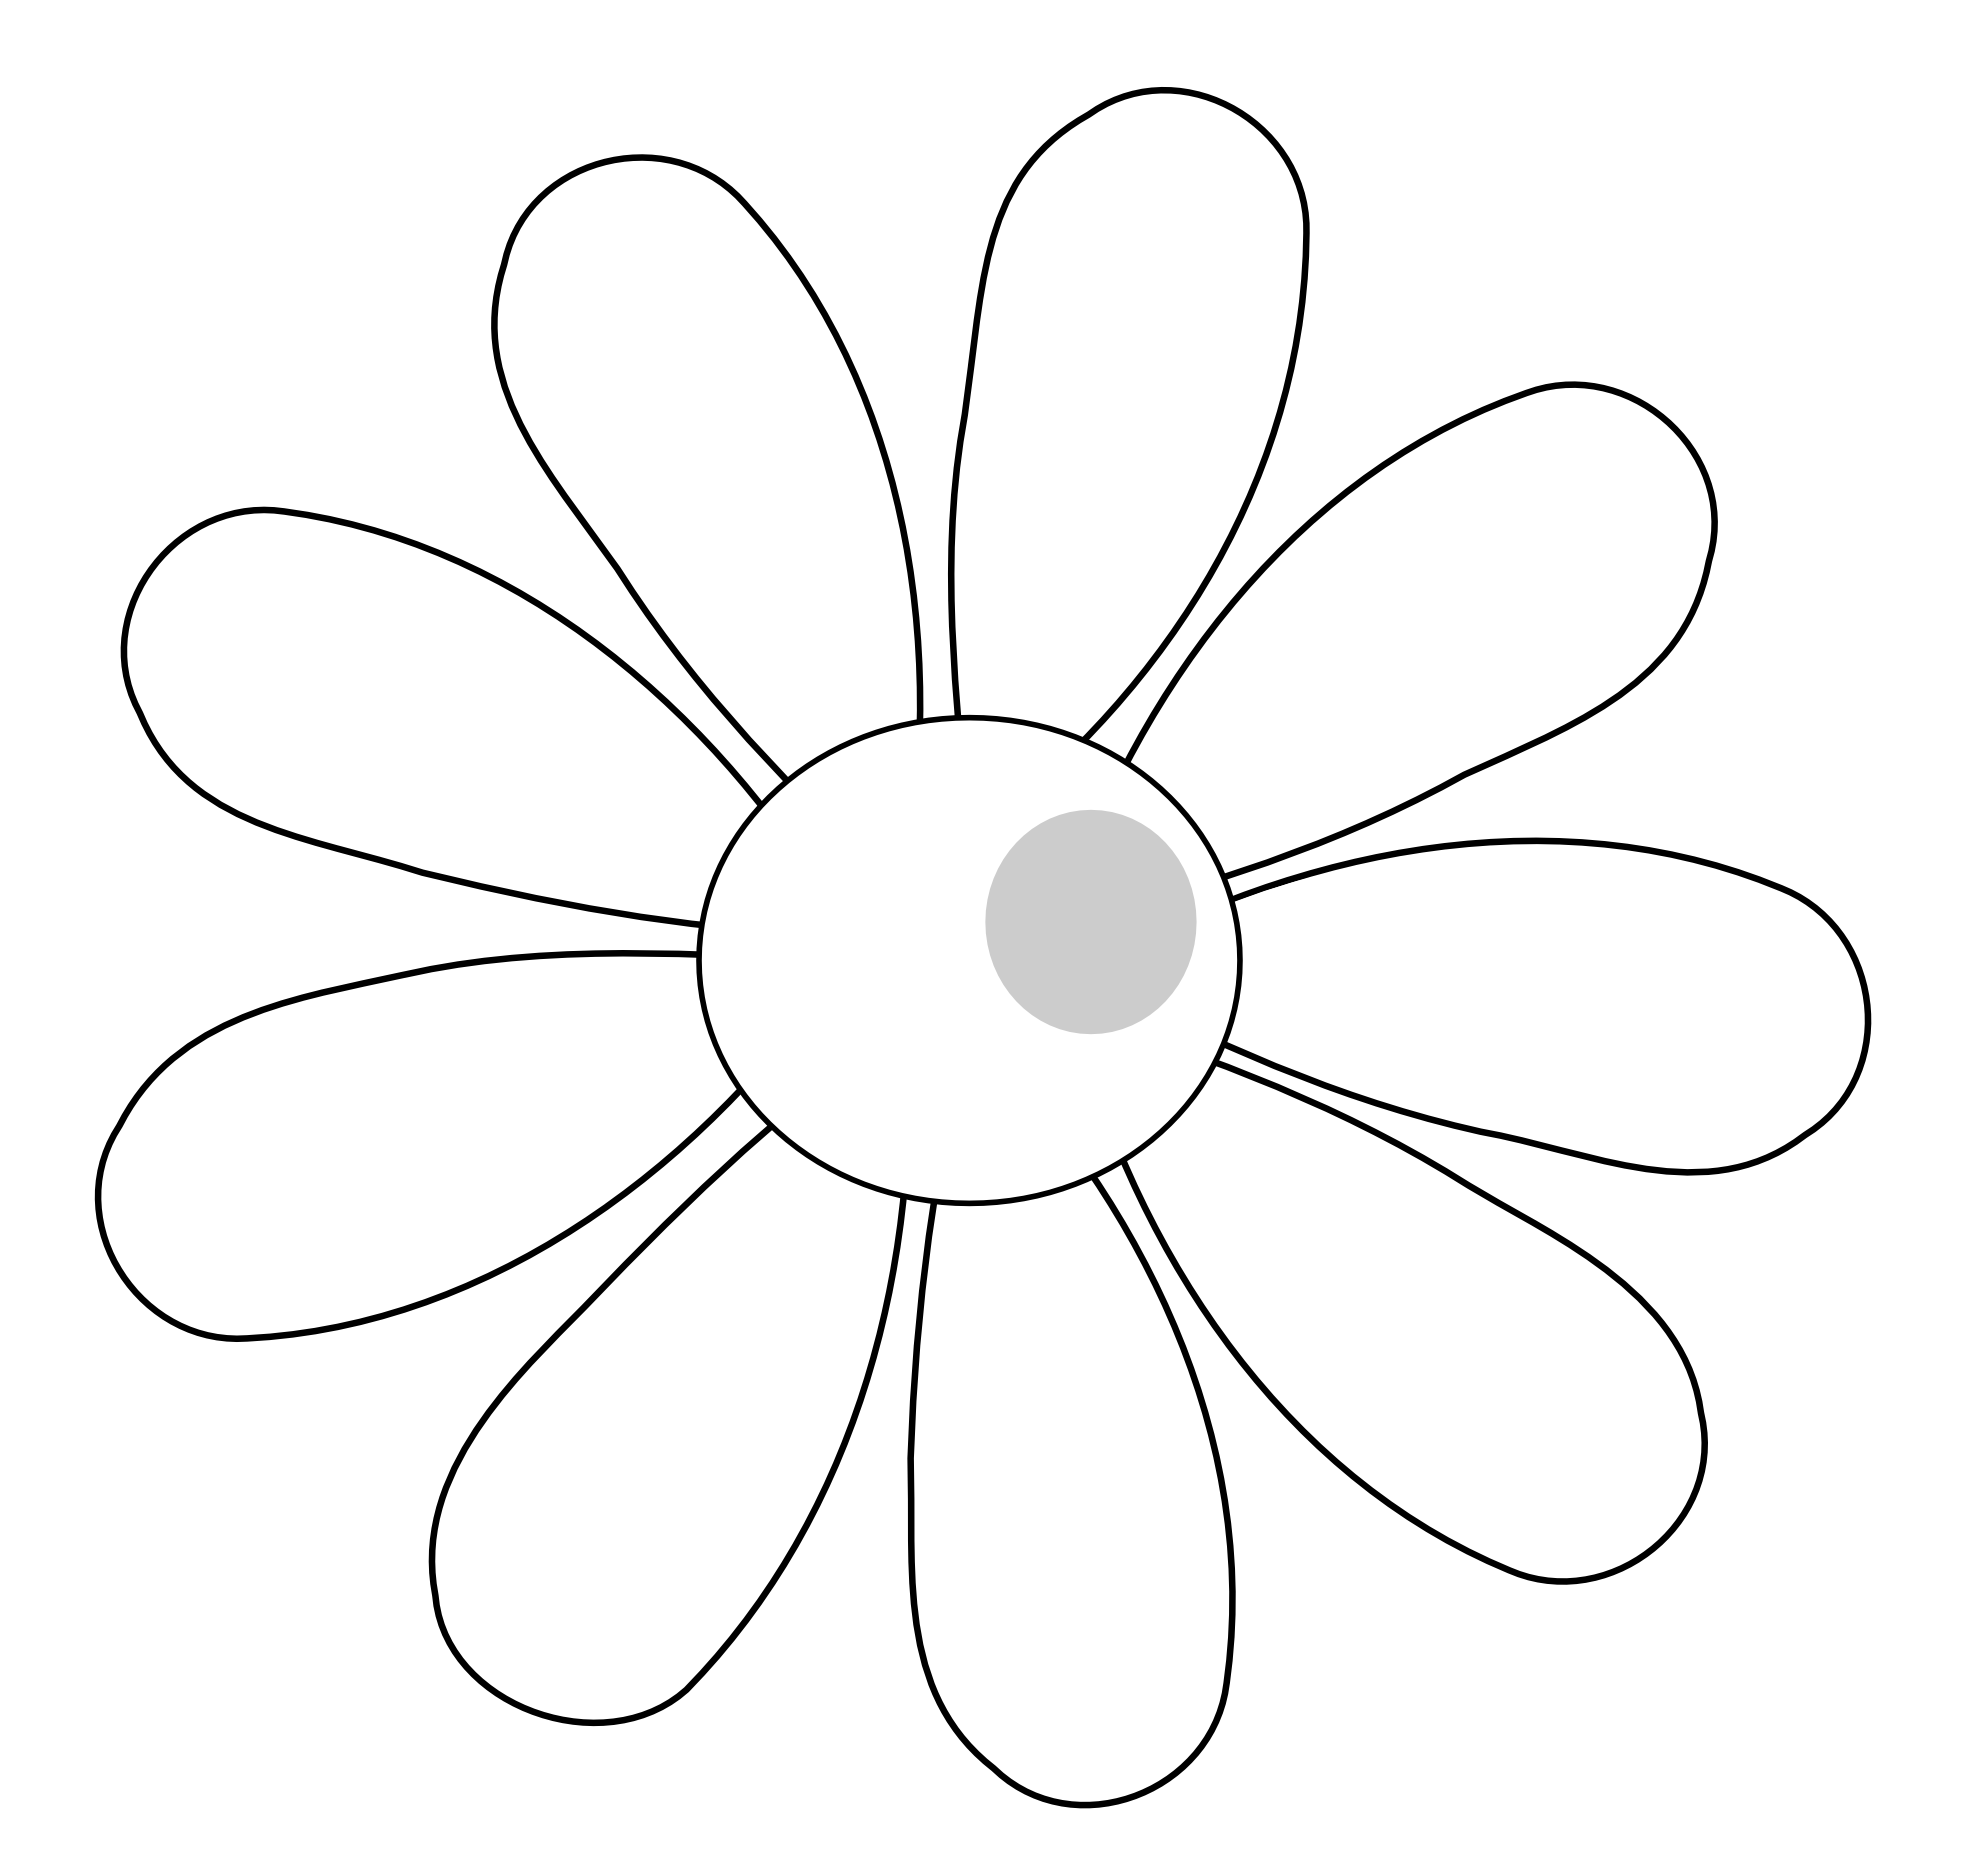 Simple Flower Outline Cliparts